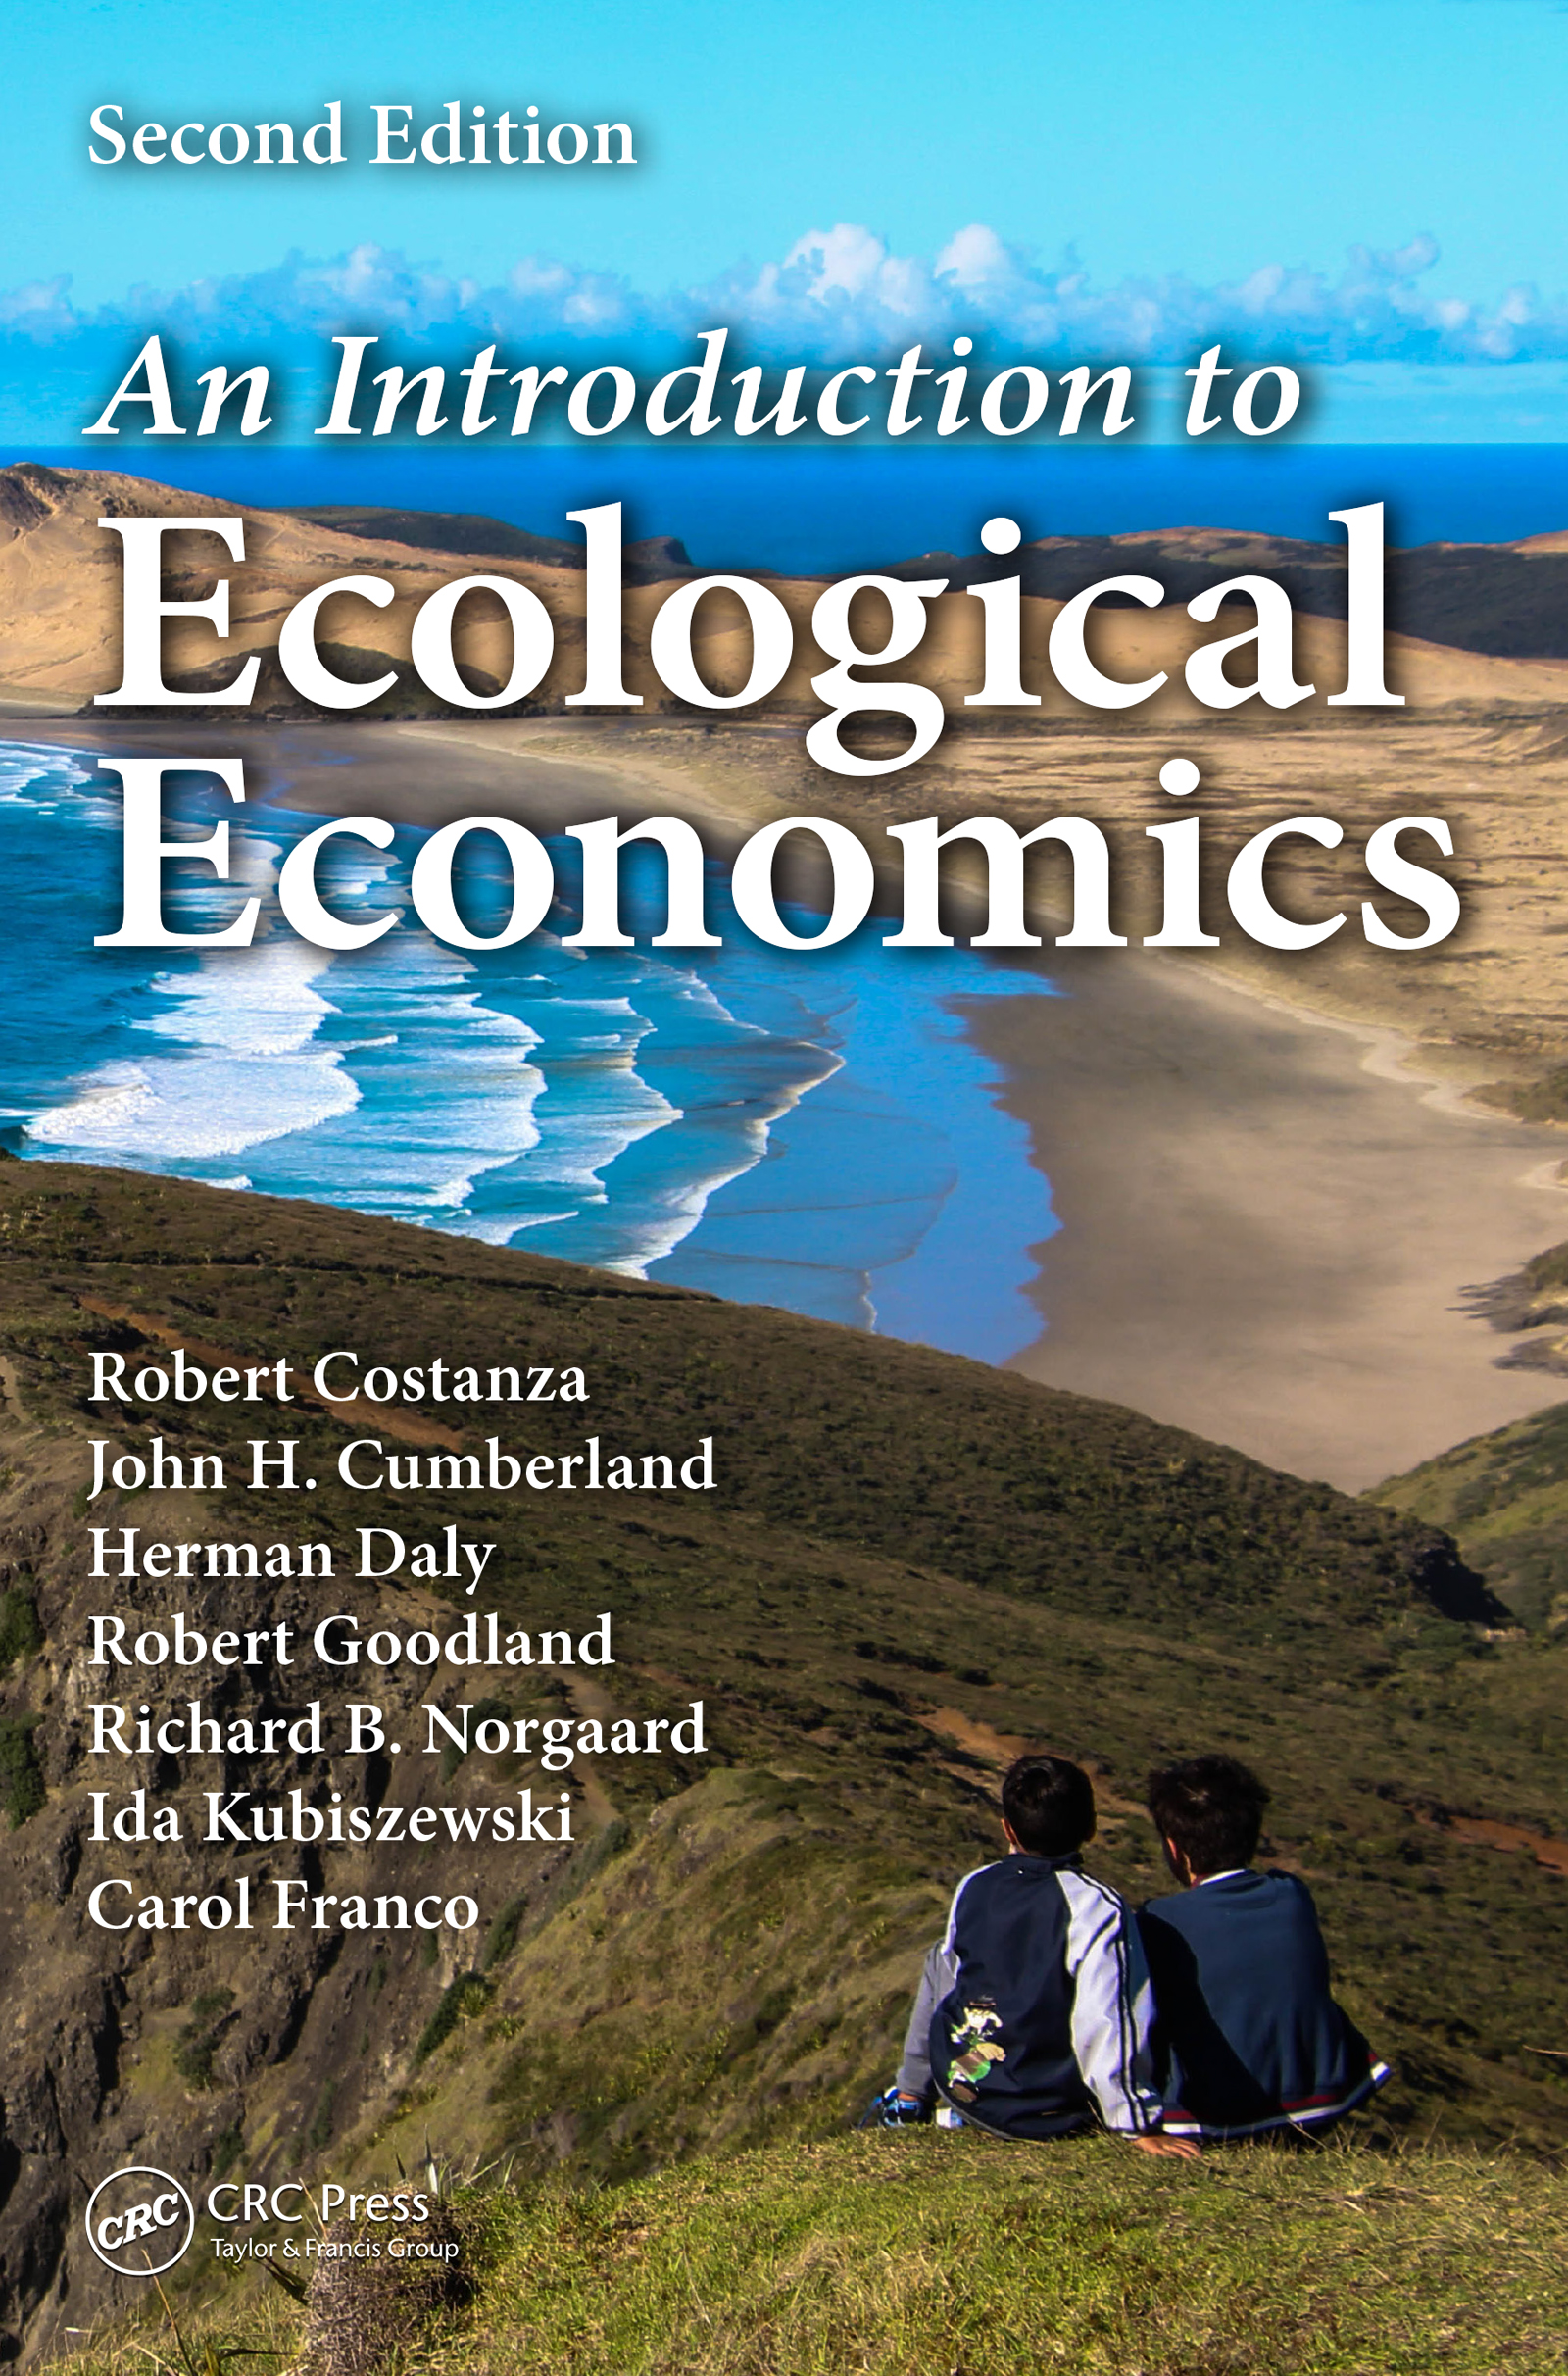 Download Ebook An Introduction to Ecological Economics (2nd ed.) by Robert Costanza Pdf